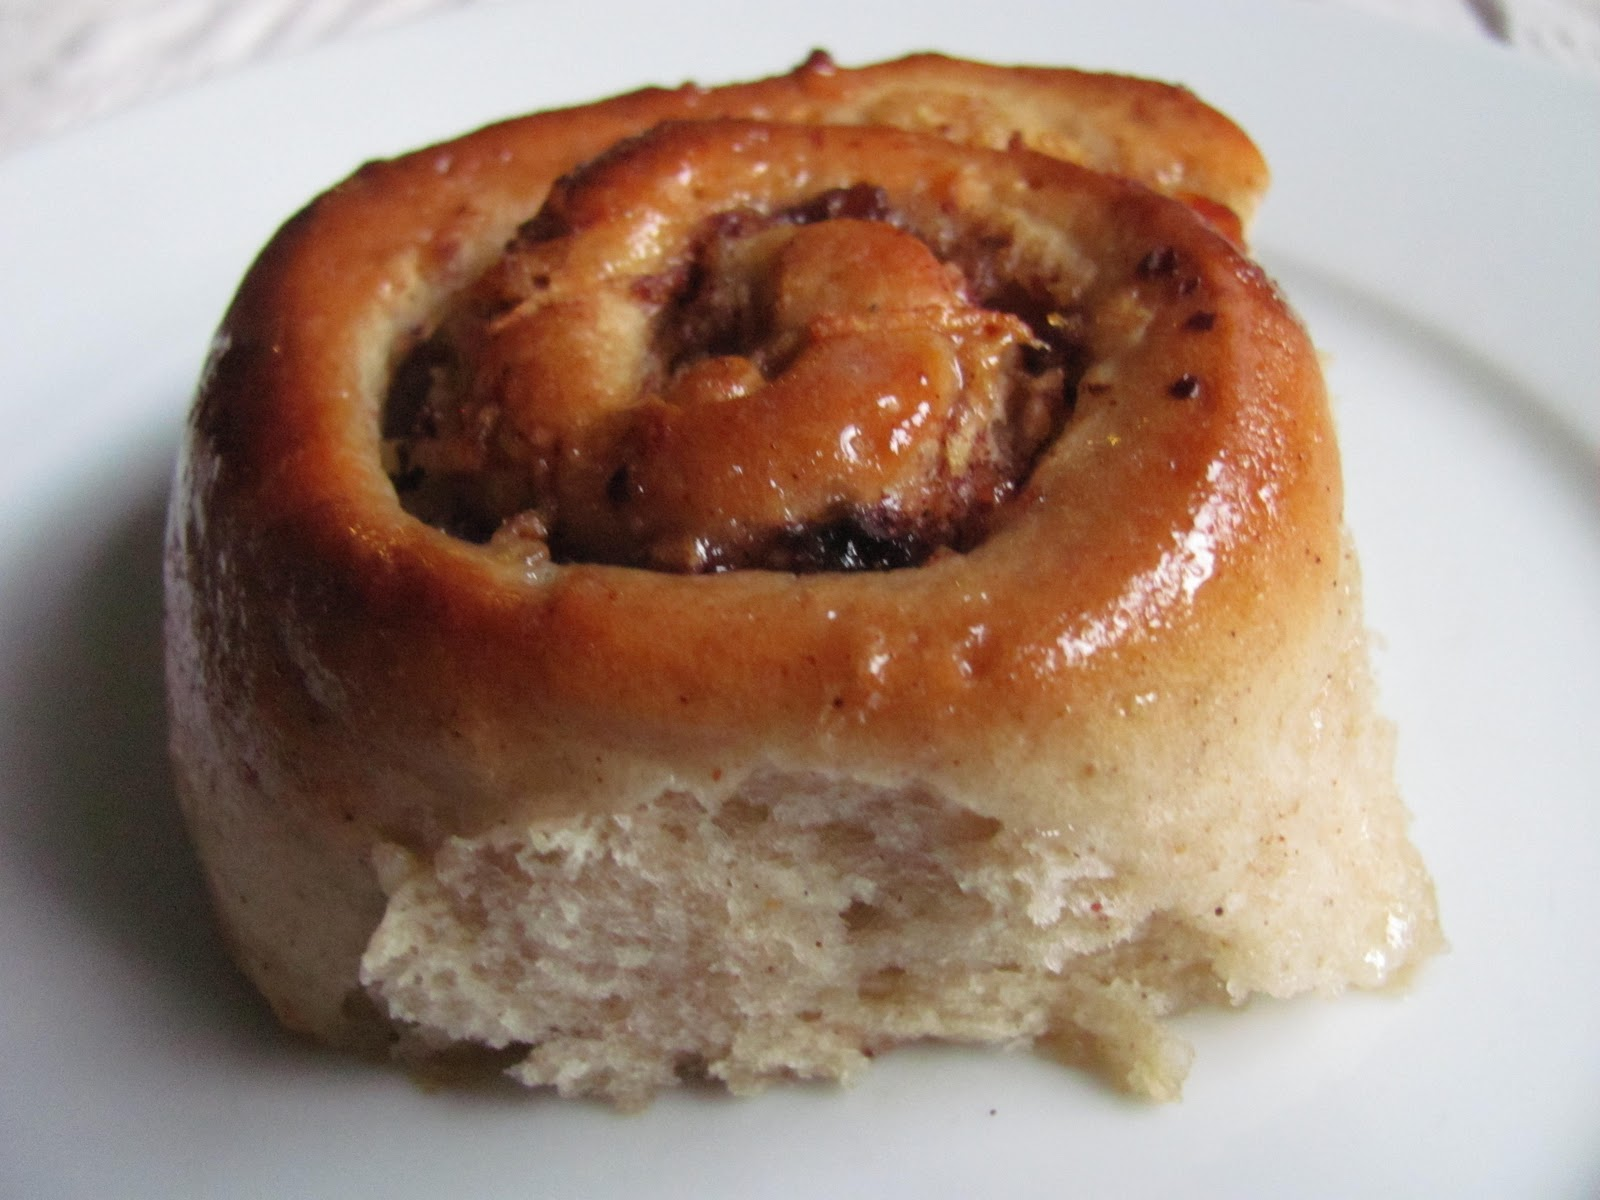 buns ham and cheese buns chelsea buns shopzed chelsea buns recipes